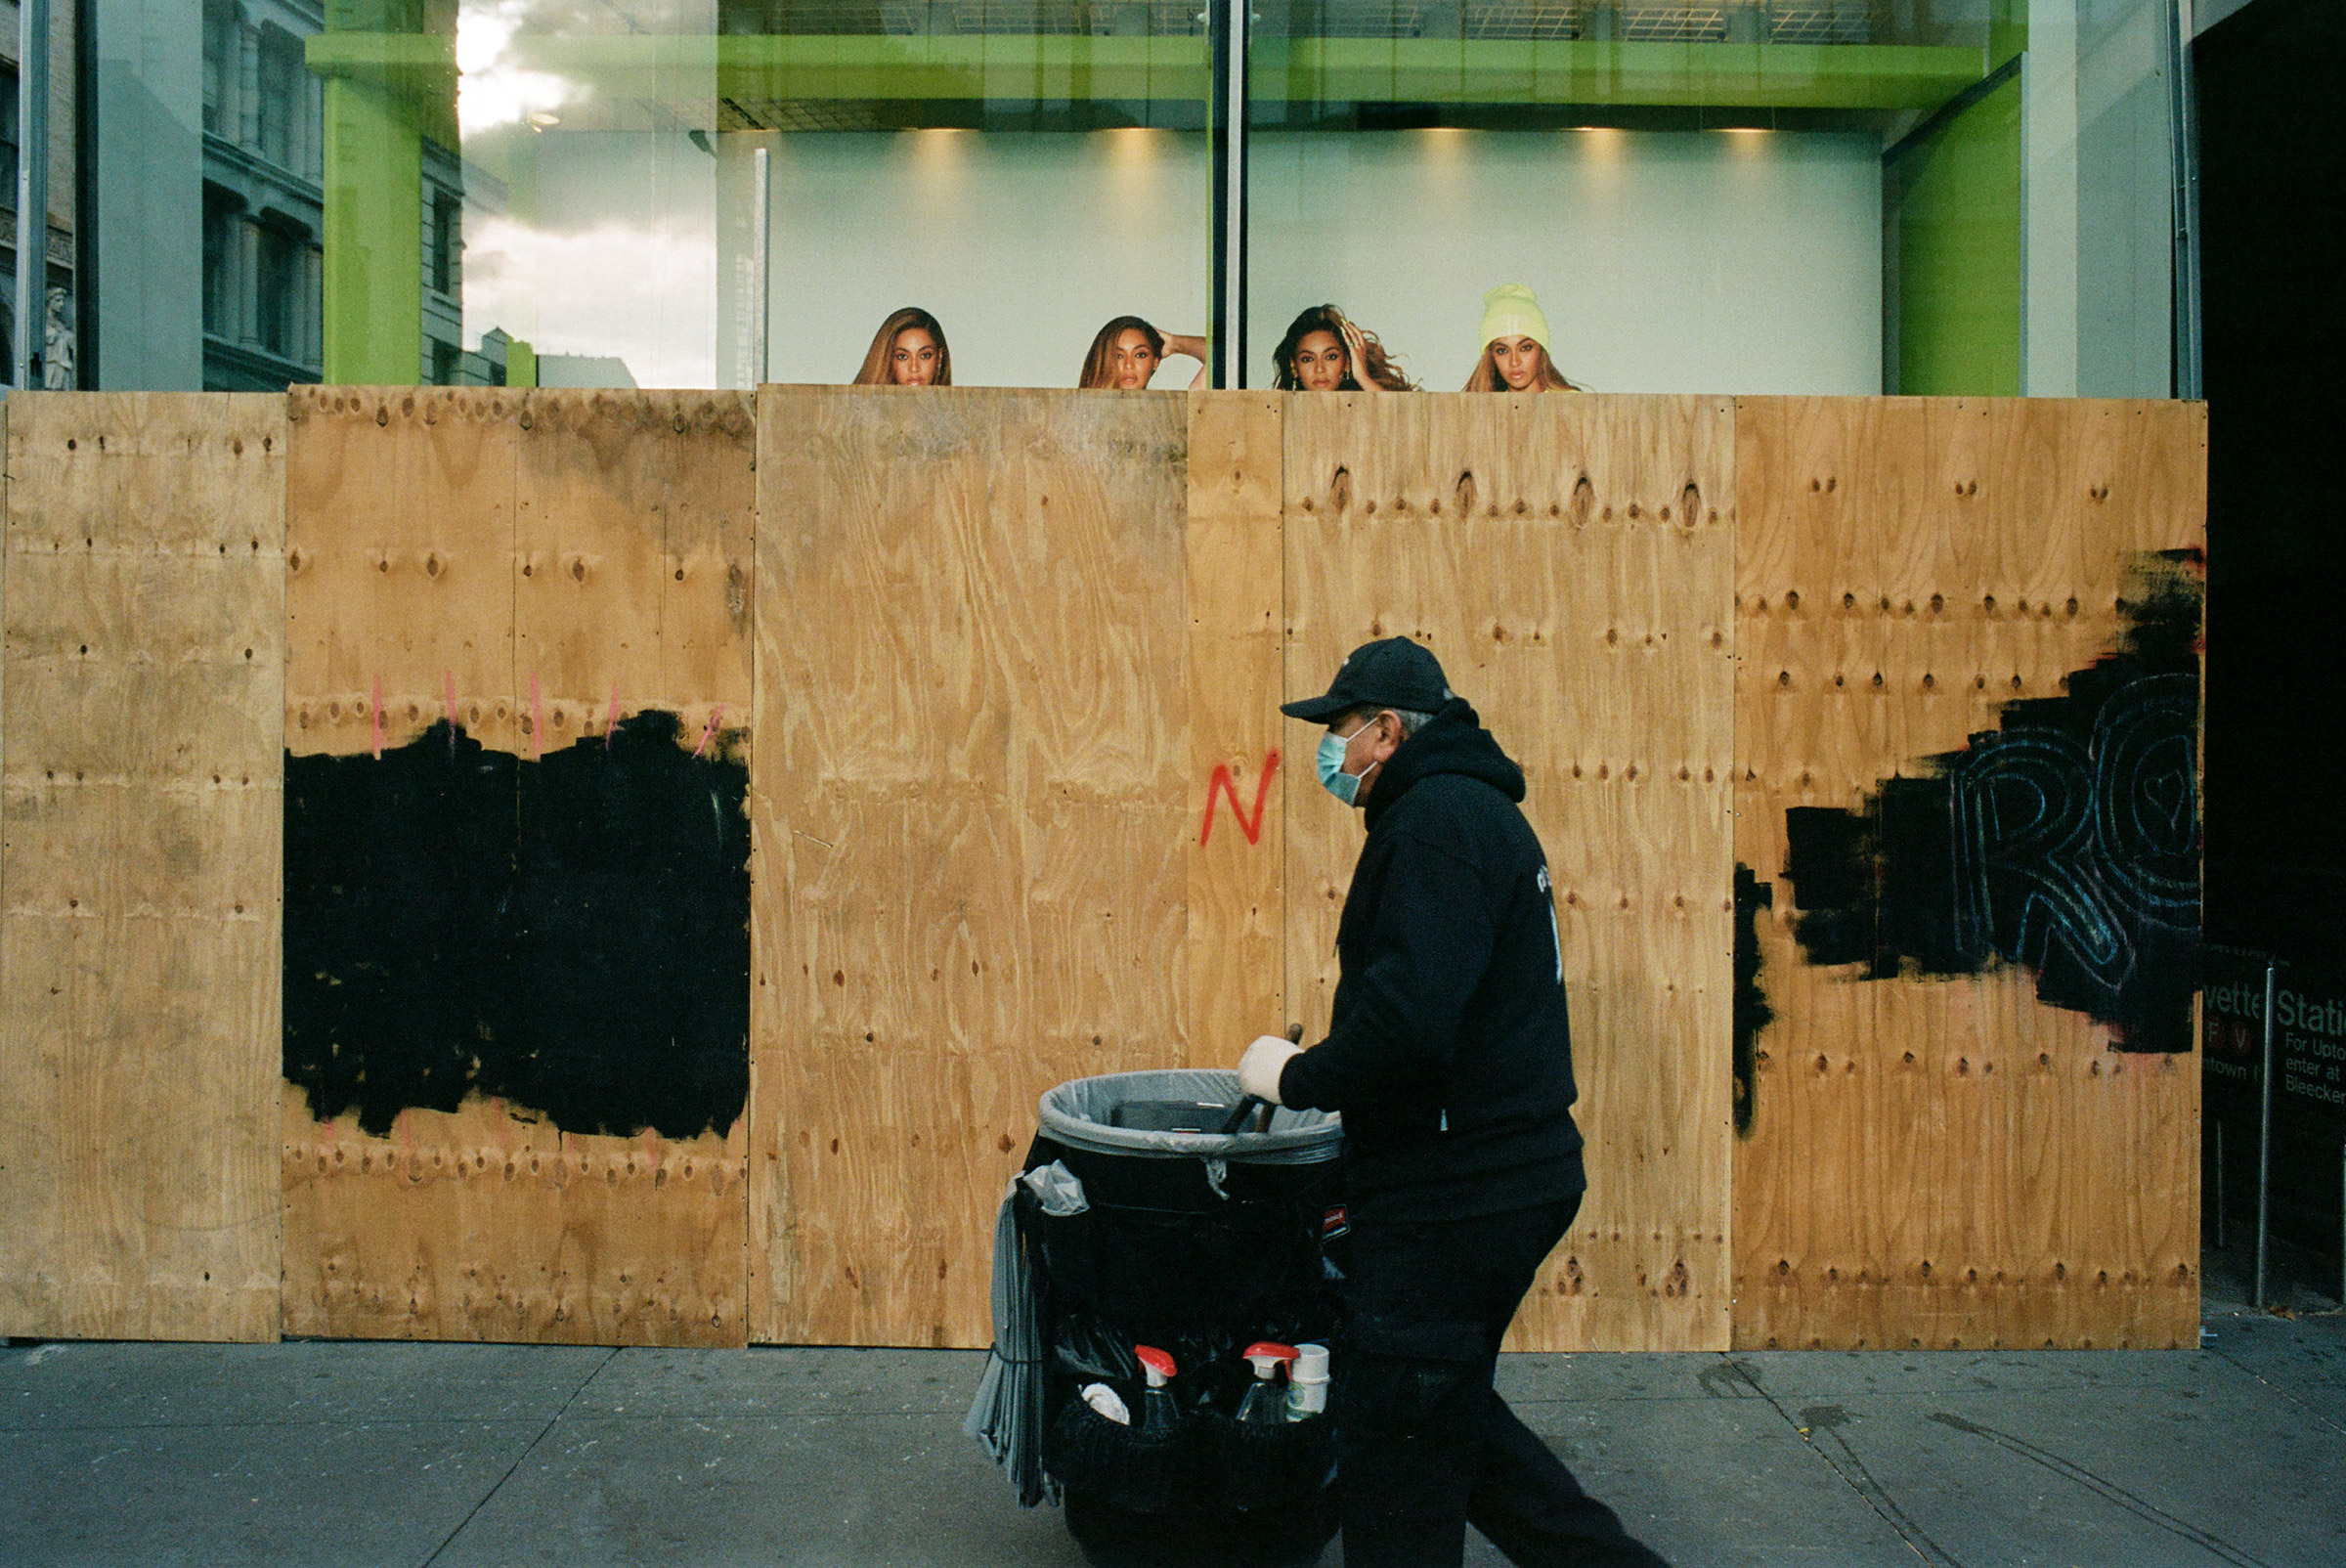 Plywood sprung up around shuttered business and storefront windows Nov. 4, 2020.